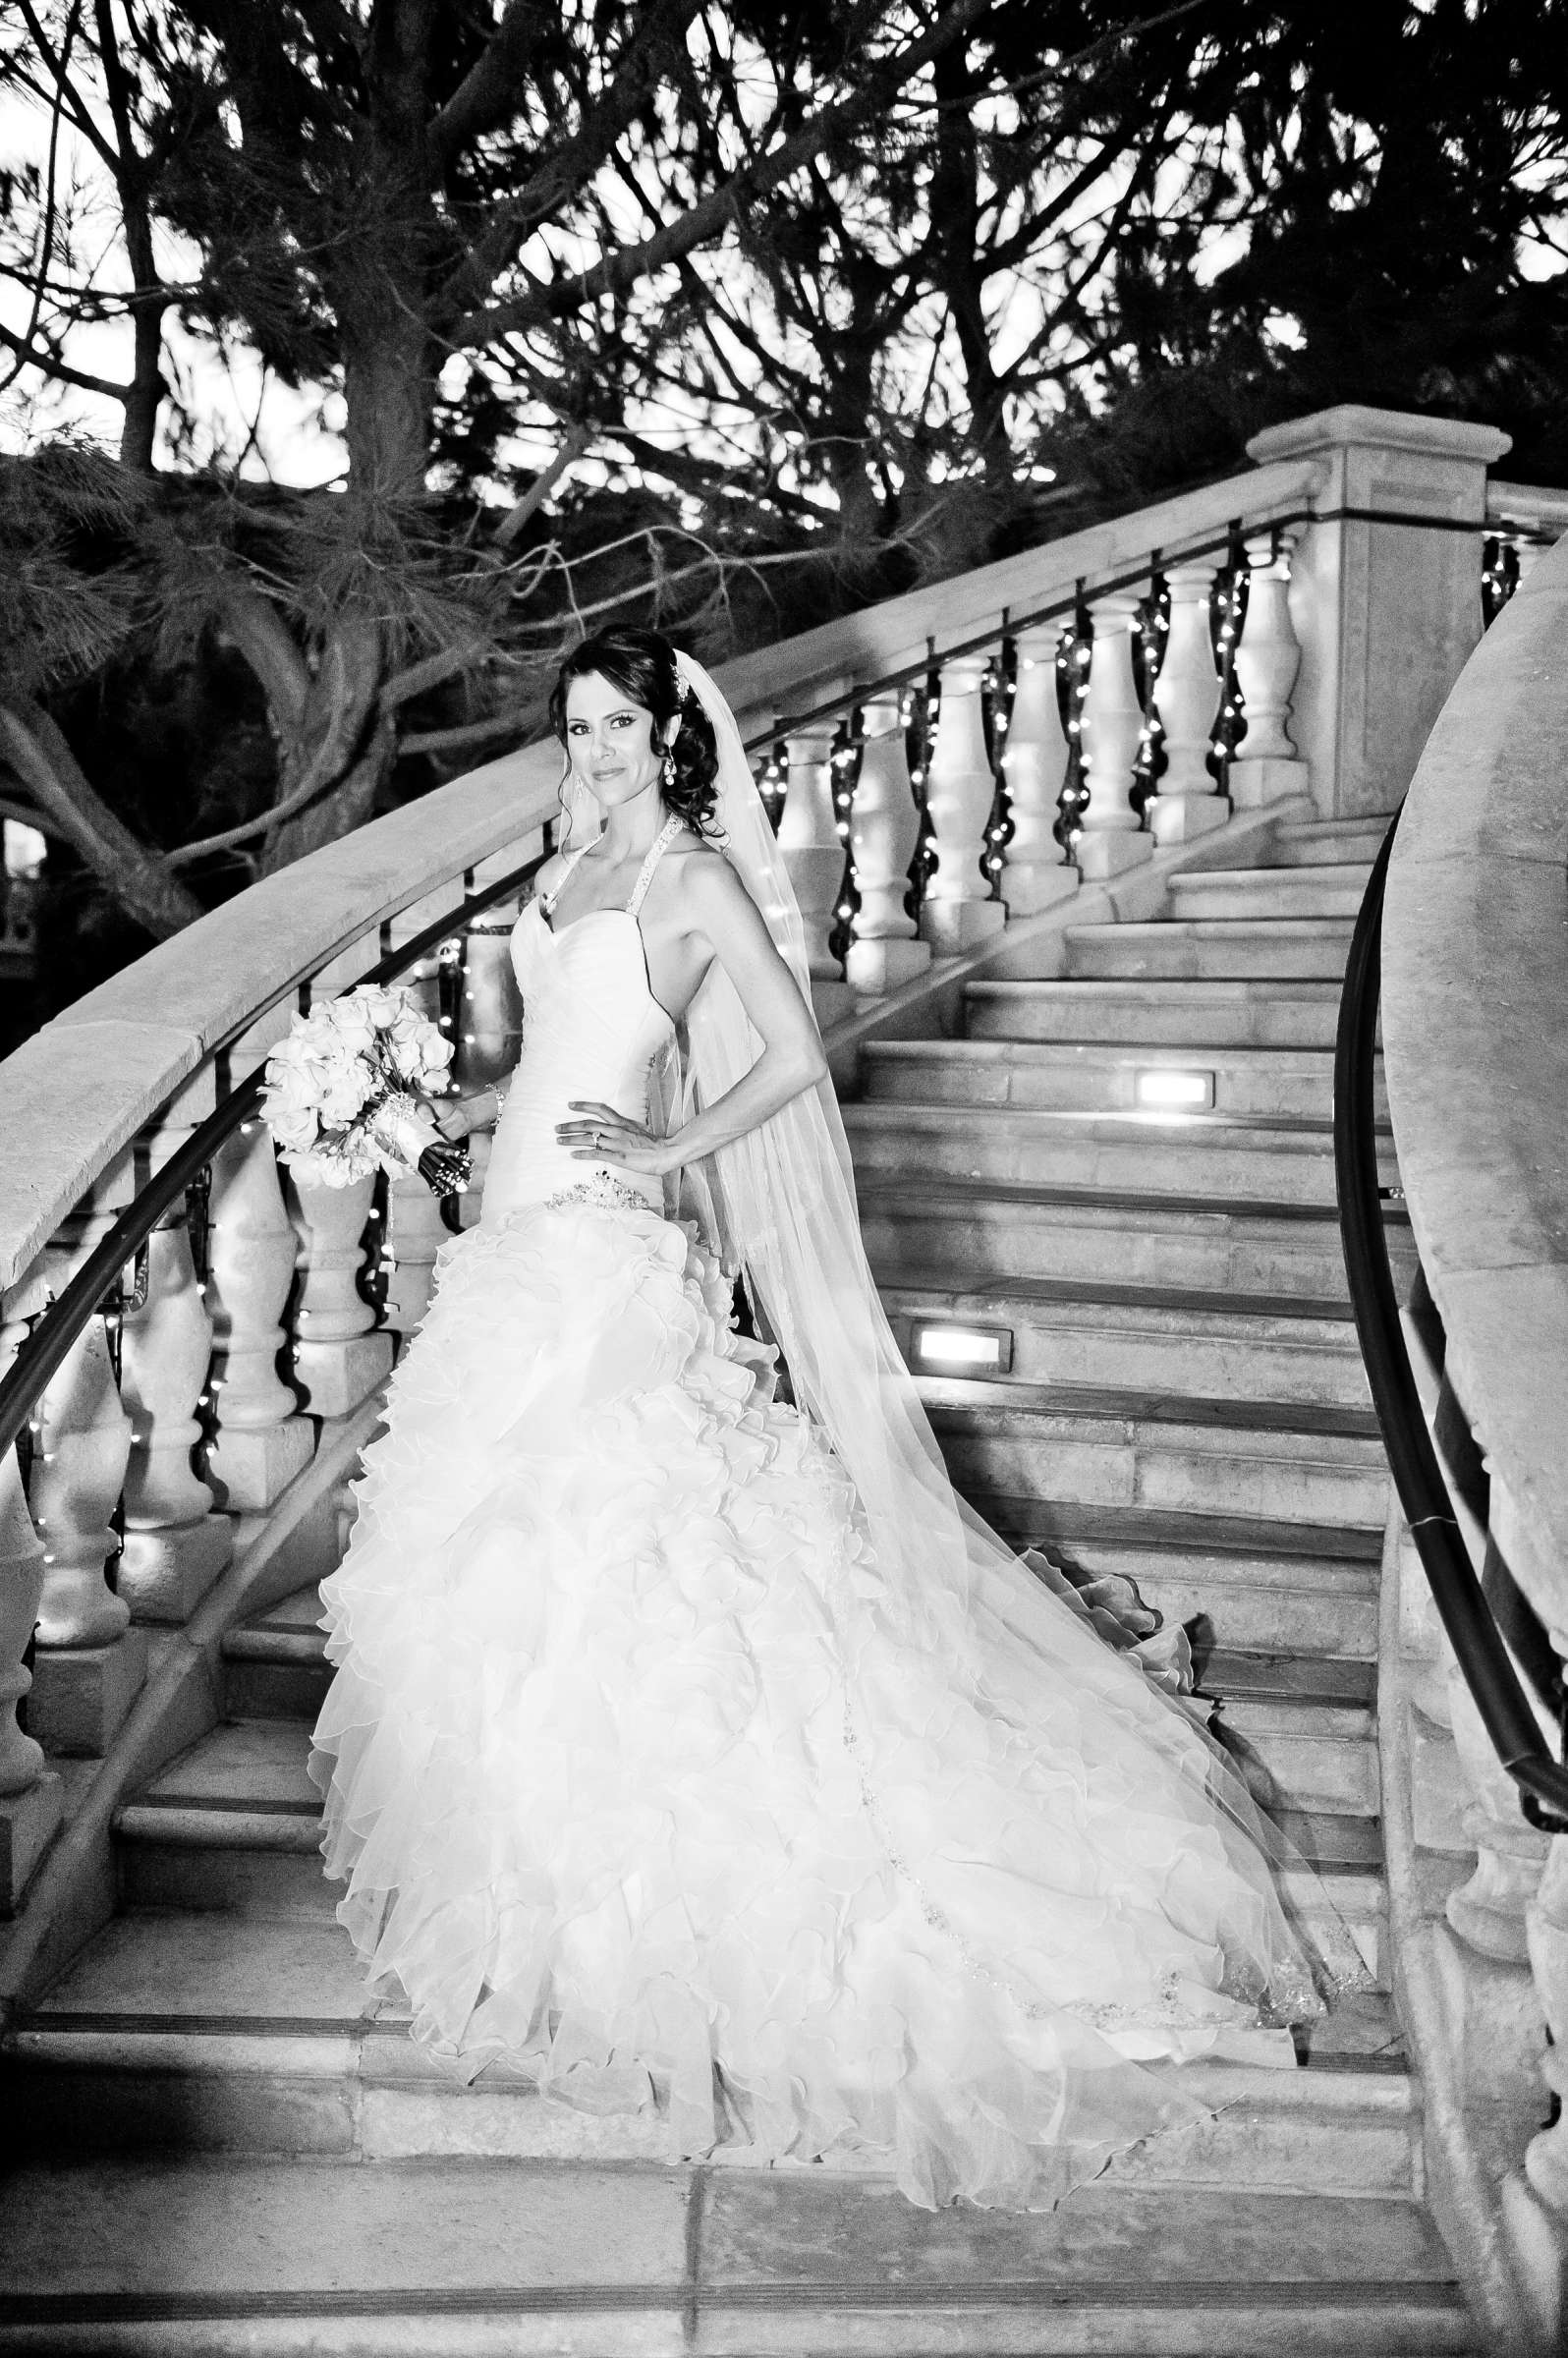 Fairmont Grand Del Mar Wedding, Angela and Tom Wedding Photo #3 by True Photography